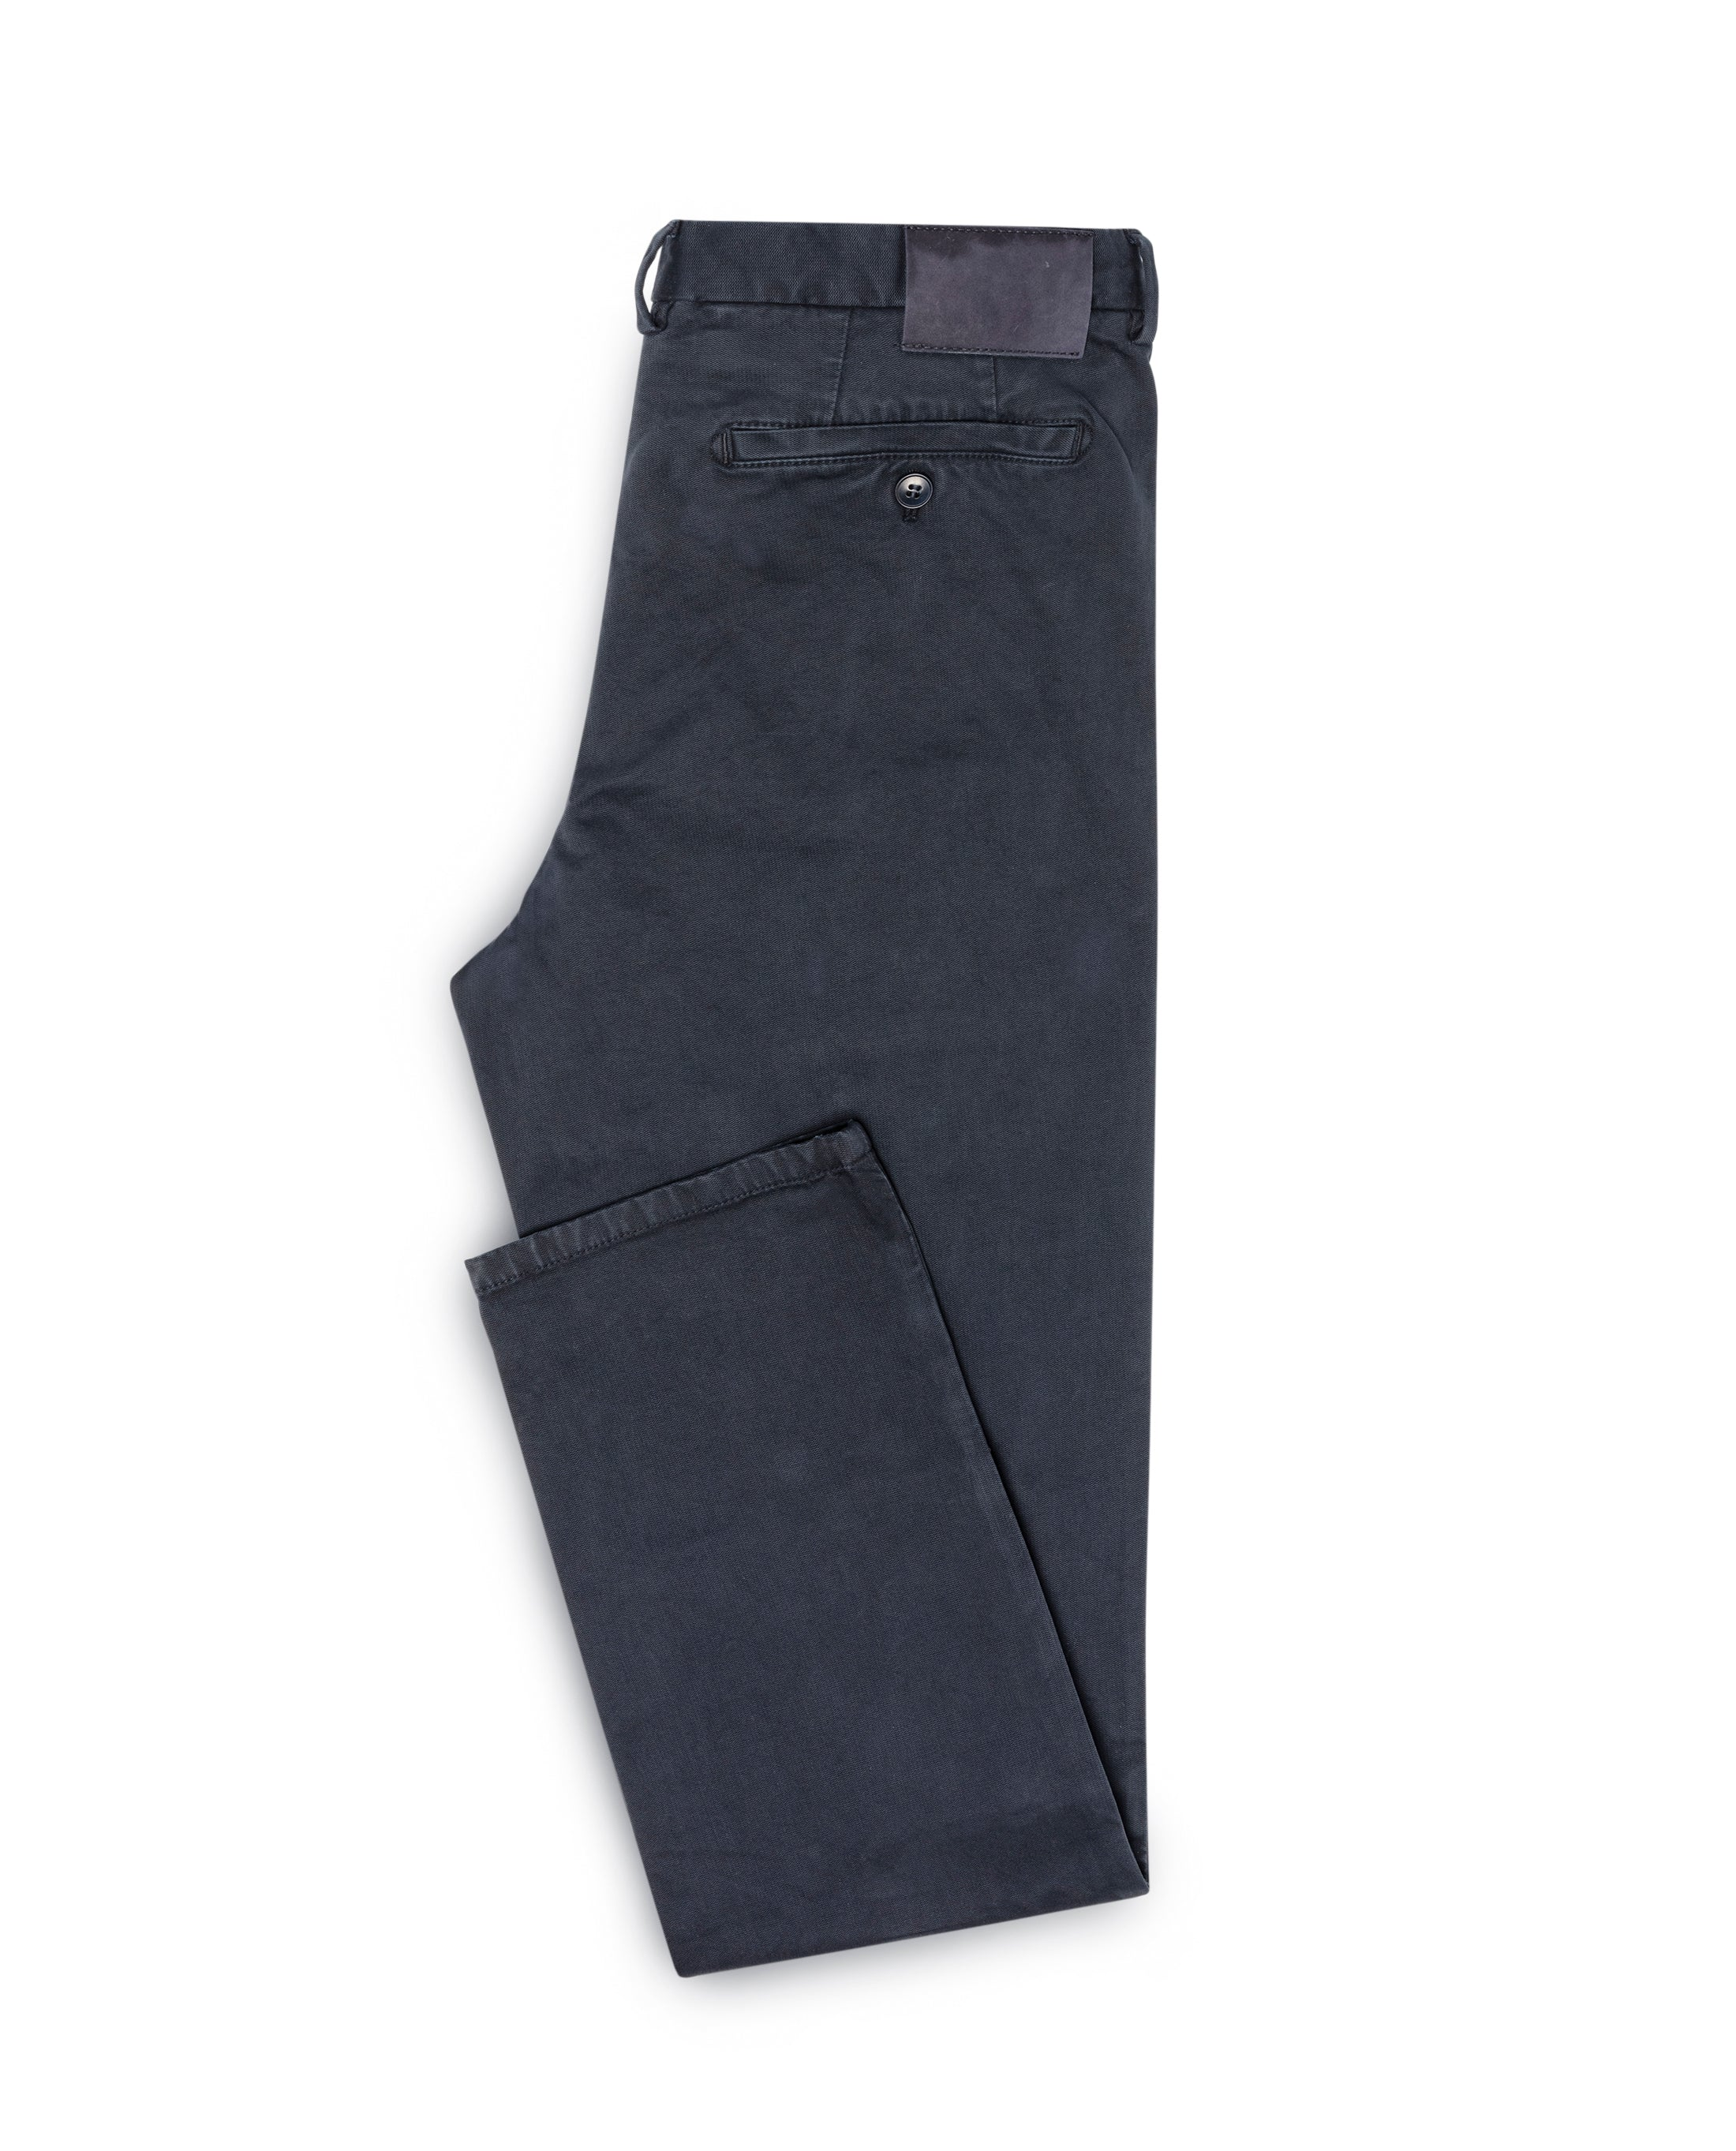 COG001 Stretch Chino Made in Italy. Medlemspris 1.200,-